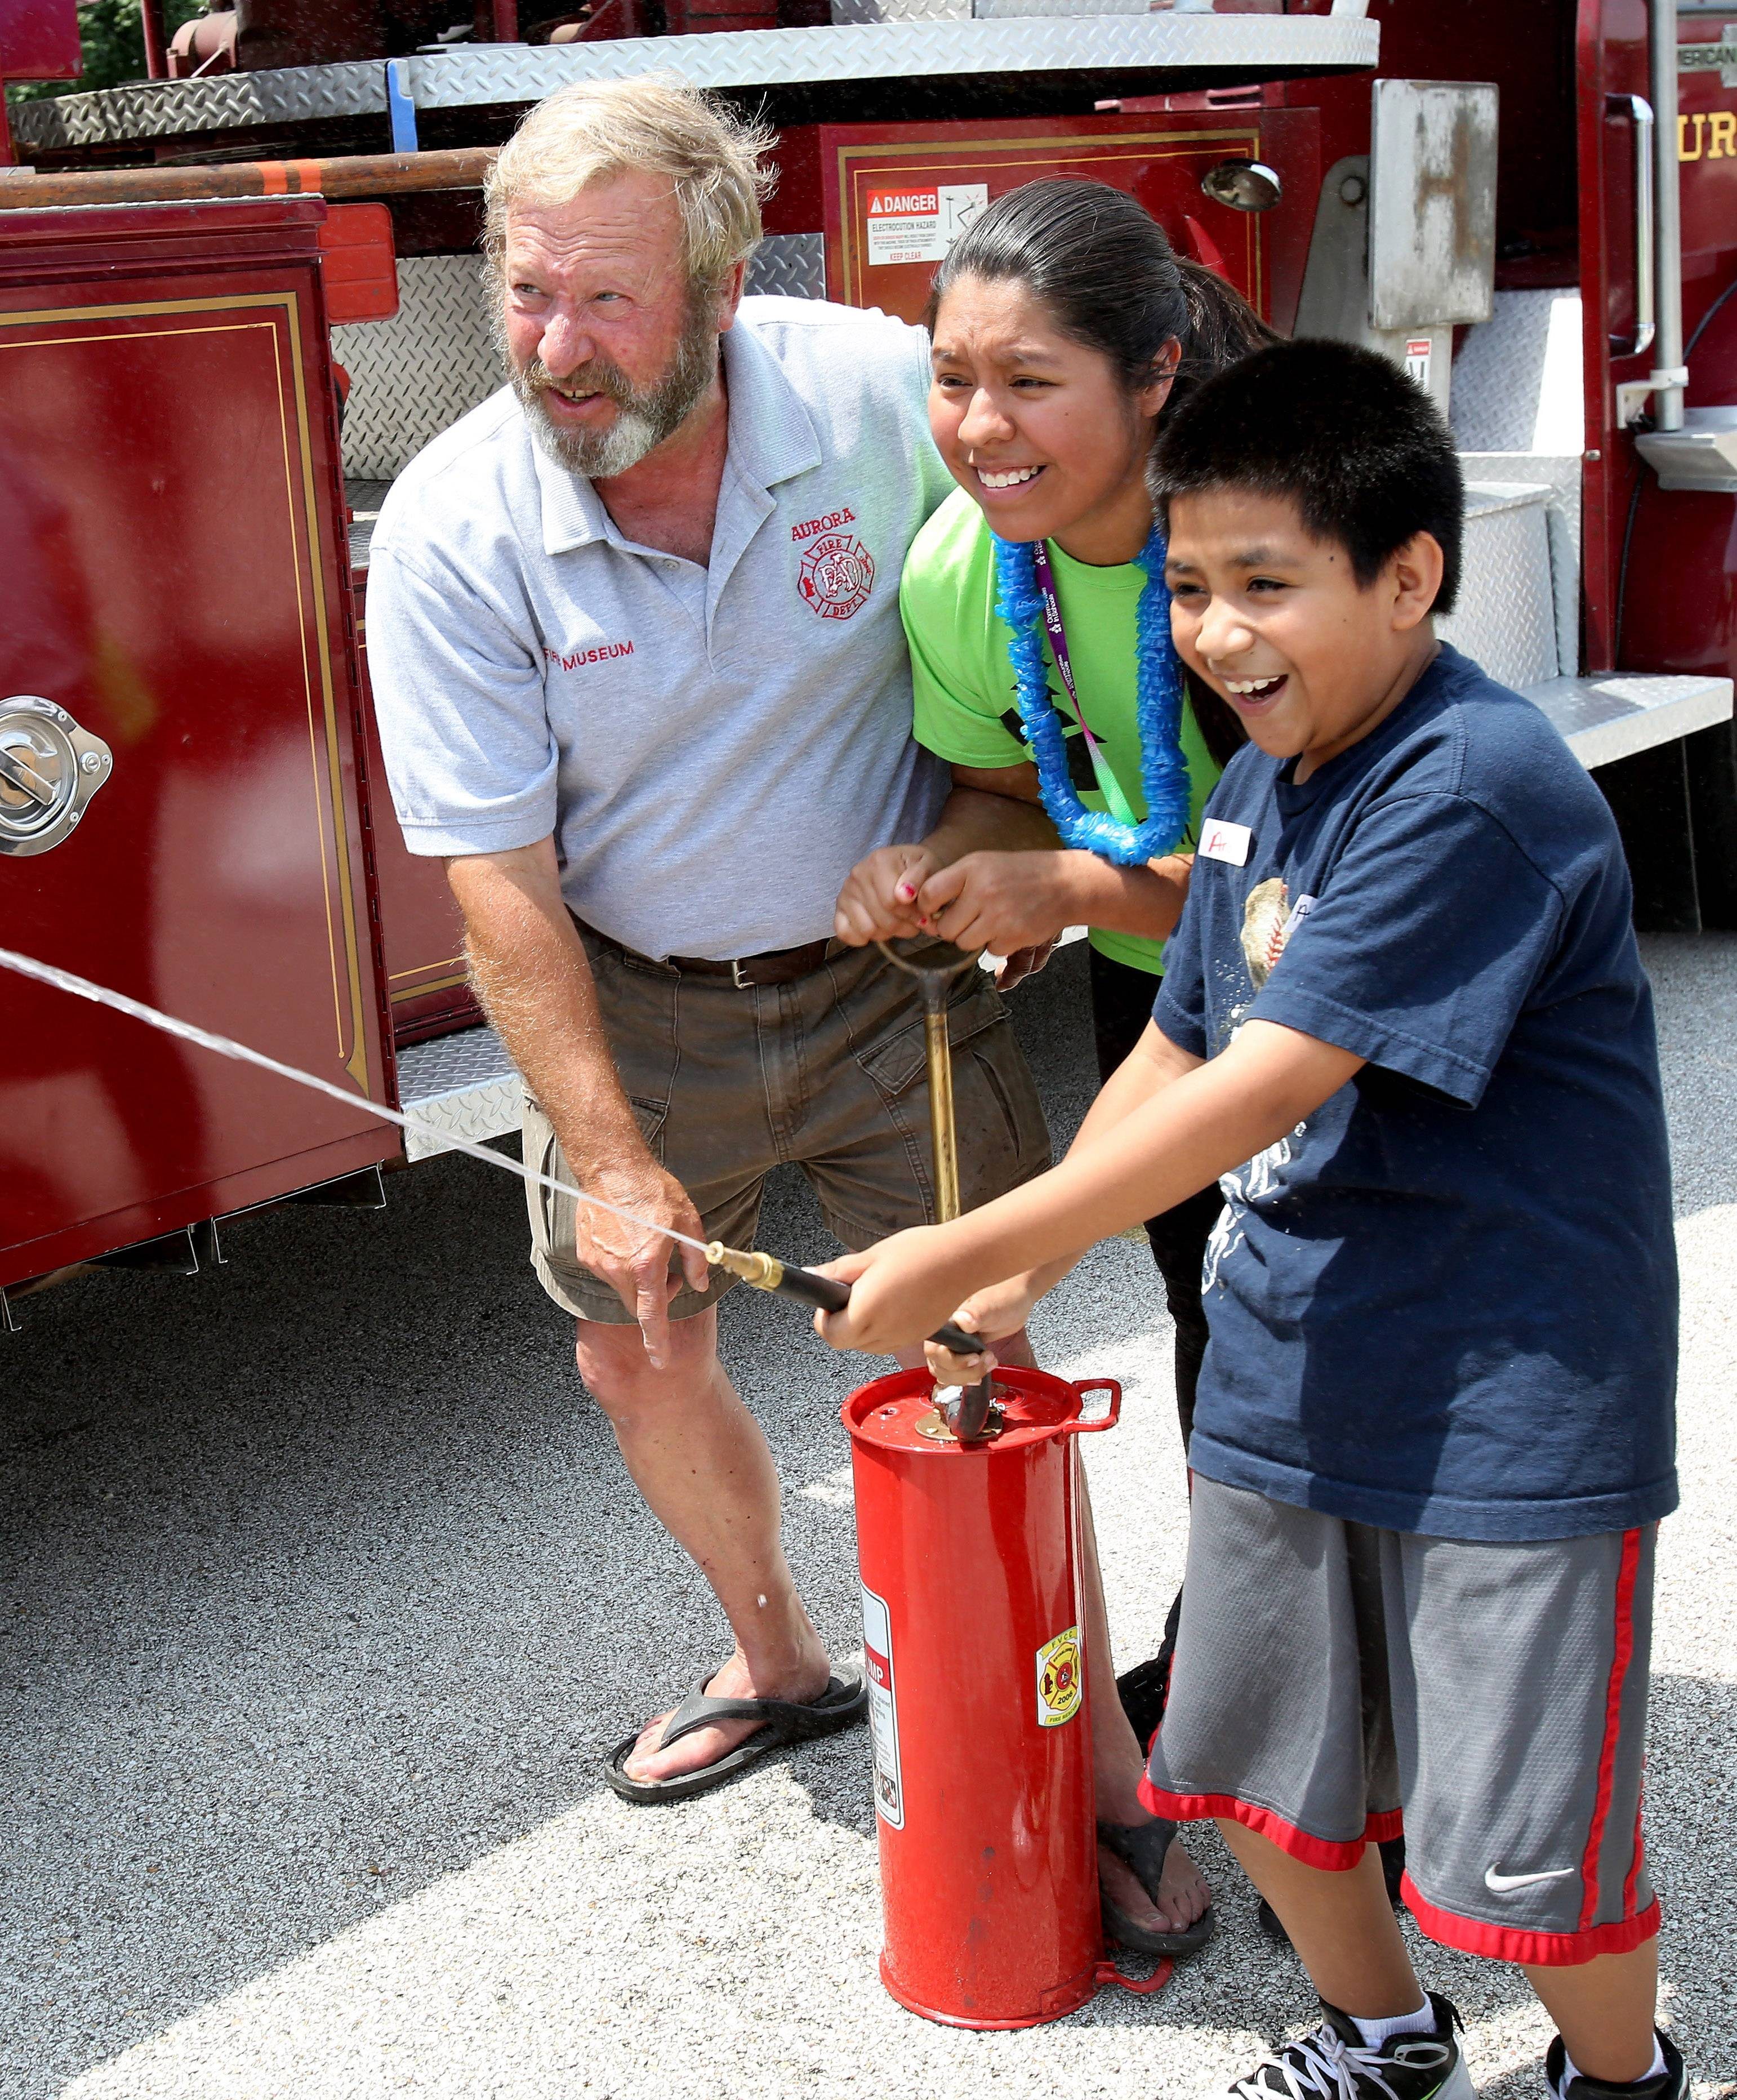 Retired Aurora firefighter, Mike Zelensek helps Evelyn Ramirez, an Aurora University student volunteer, and Andy Calderon, 10, use a pump can during the Youth Firefighter Challenge summer camp at the Aurora Regional Fire Museum.